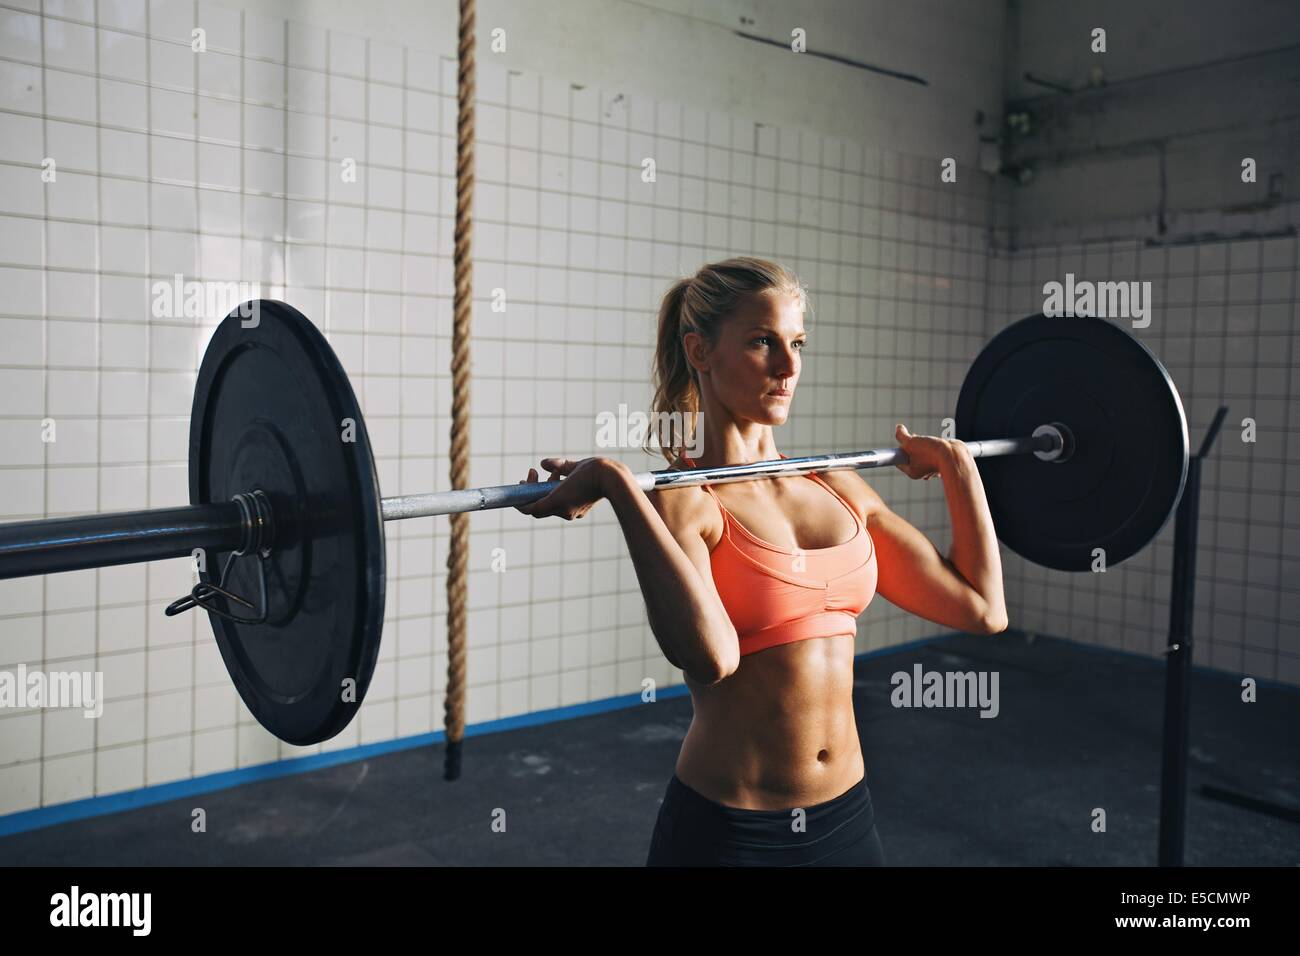 Femme Fitness concentrant tout en soulevant des barres. Strong Woman lifting weights in crossfit gym. Modèle des Banque D'Images